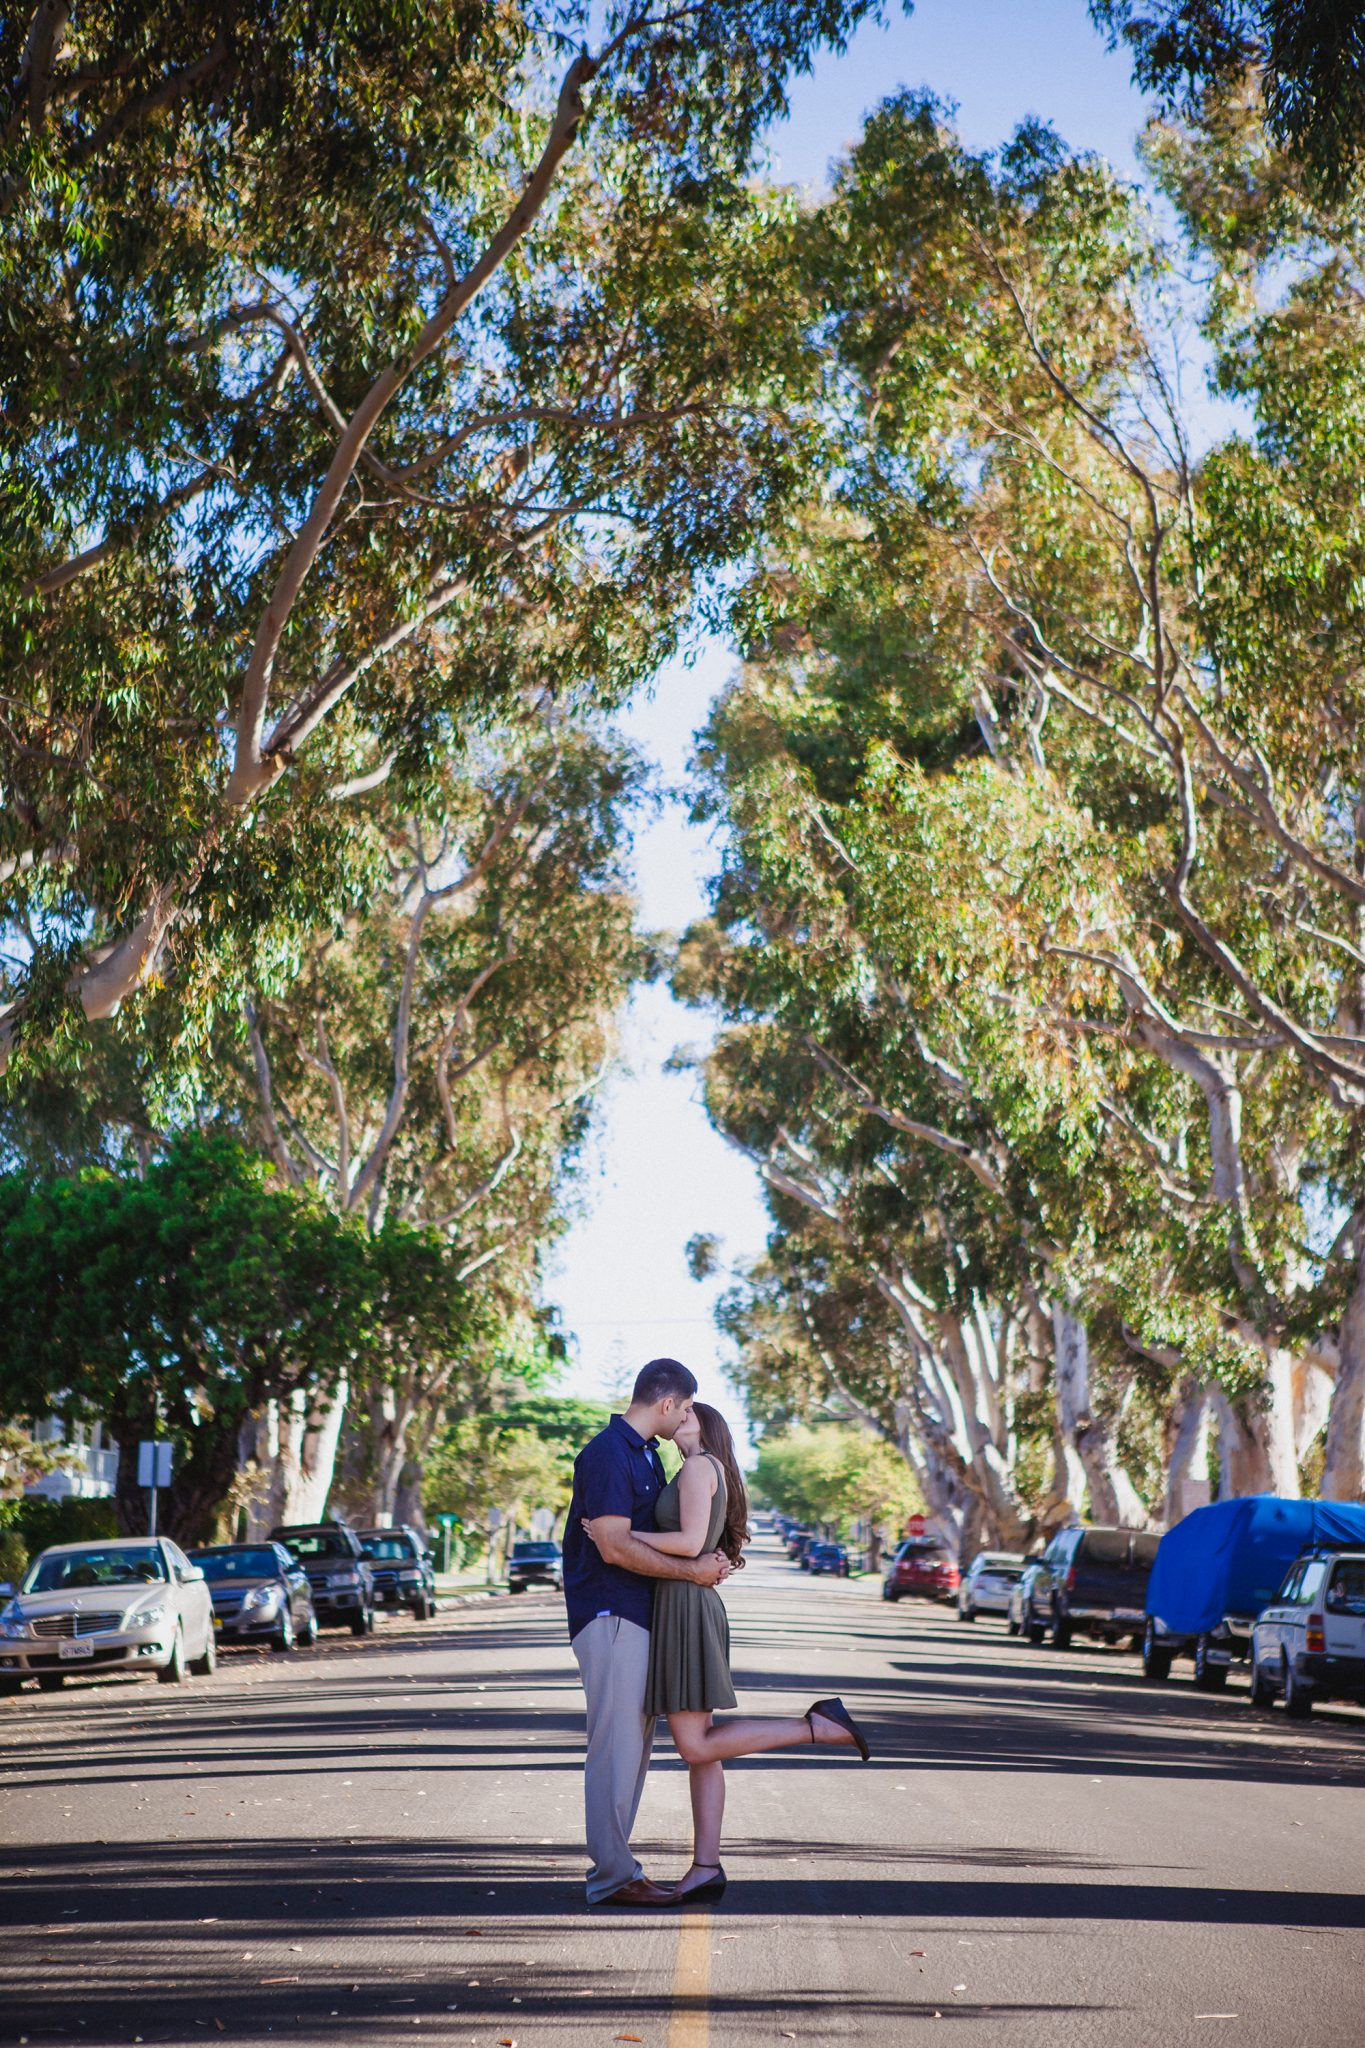 Engagement photo in a tree-lined street in Coronado